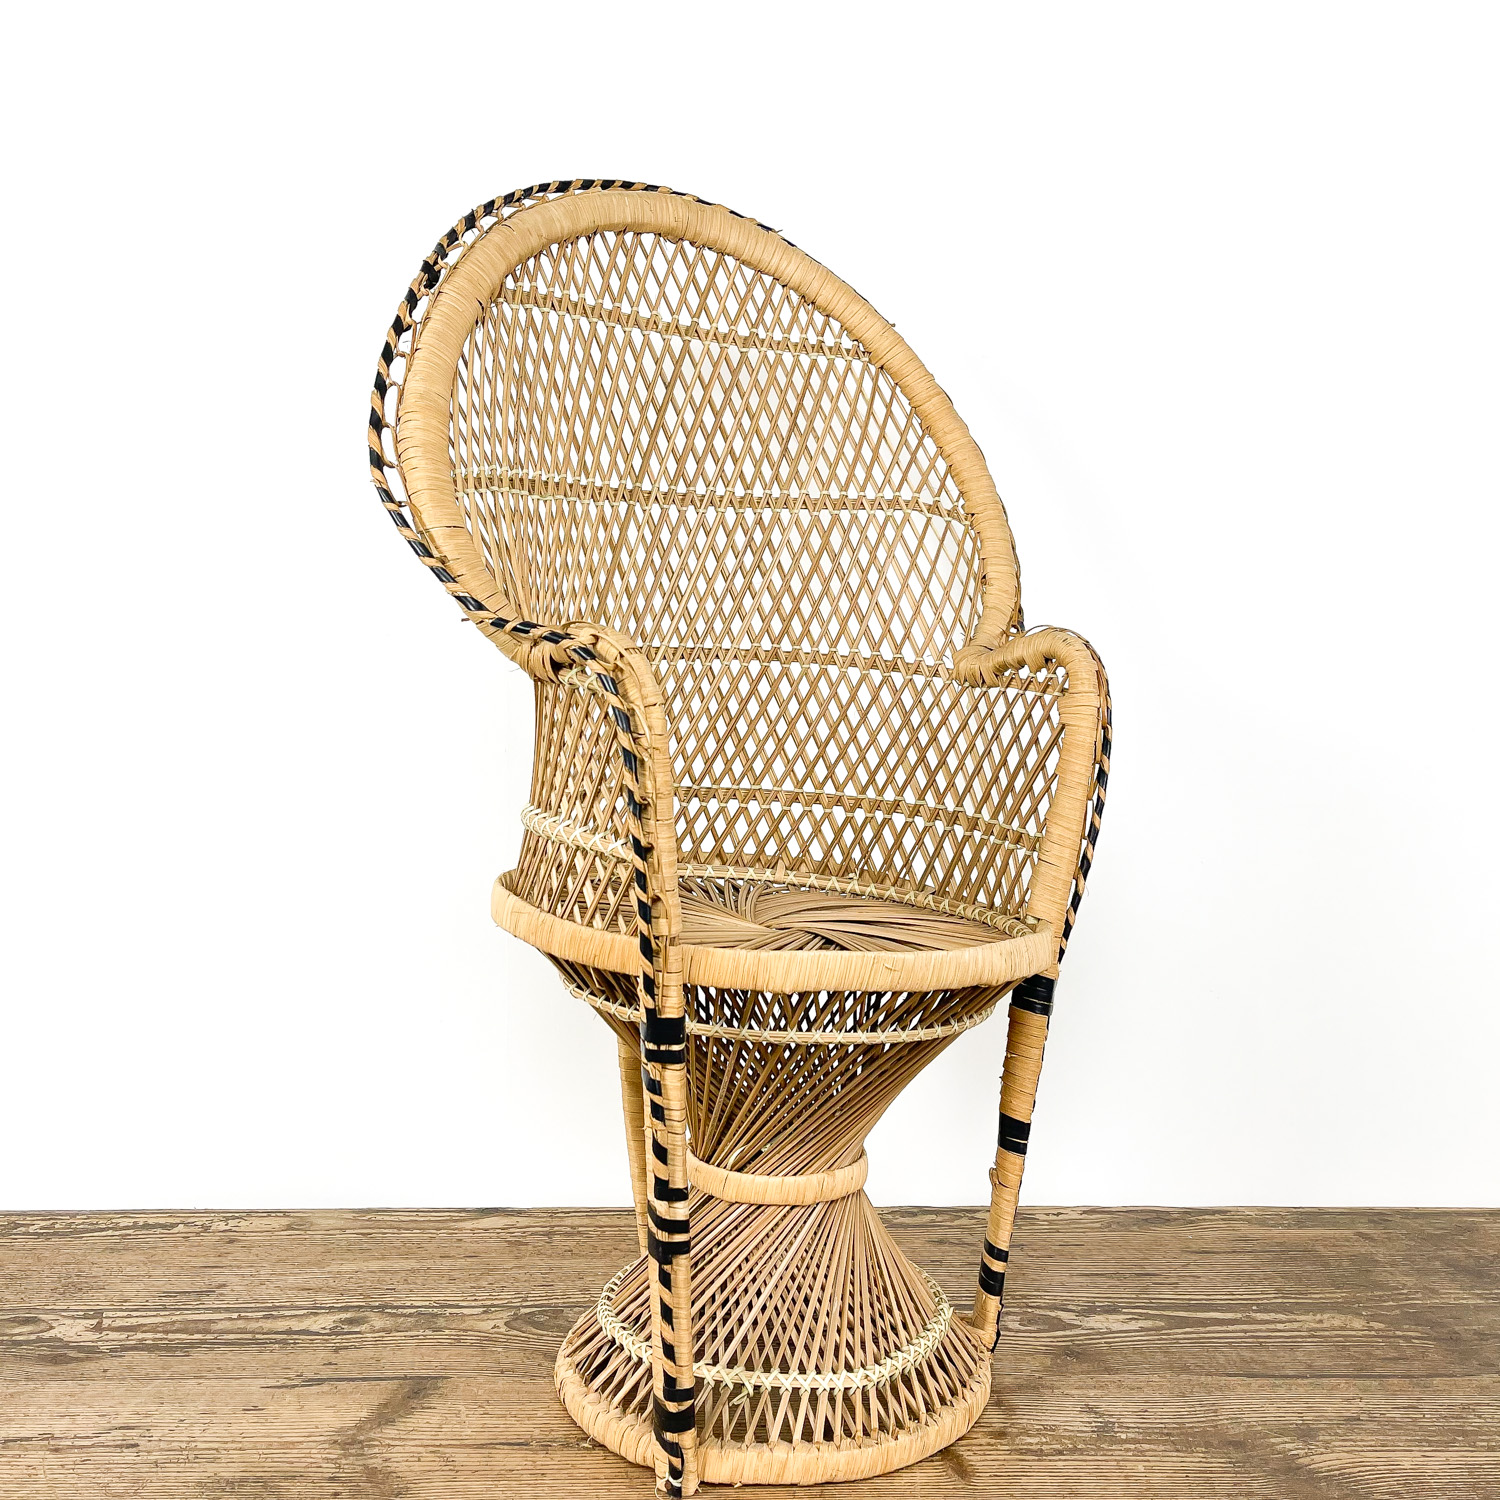 Vintage rattan childrens peacock chair